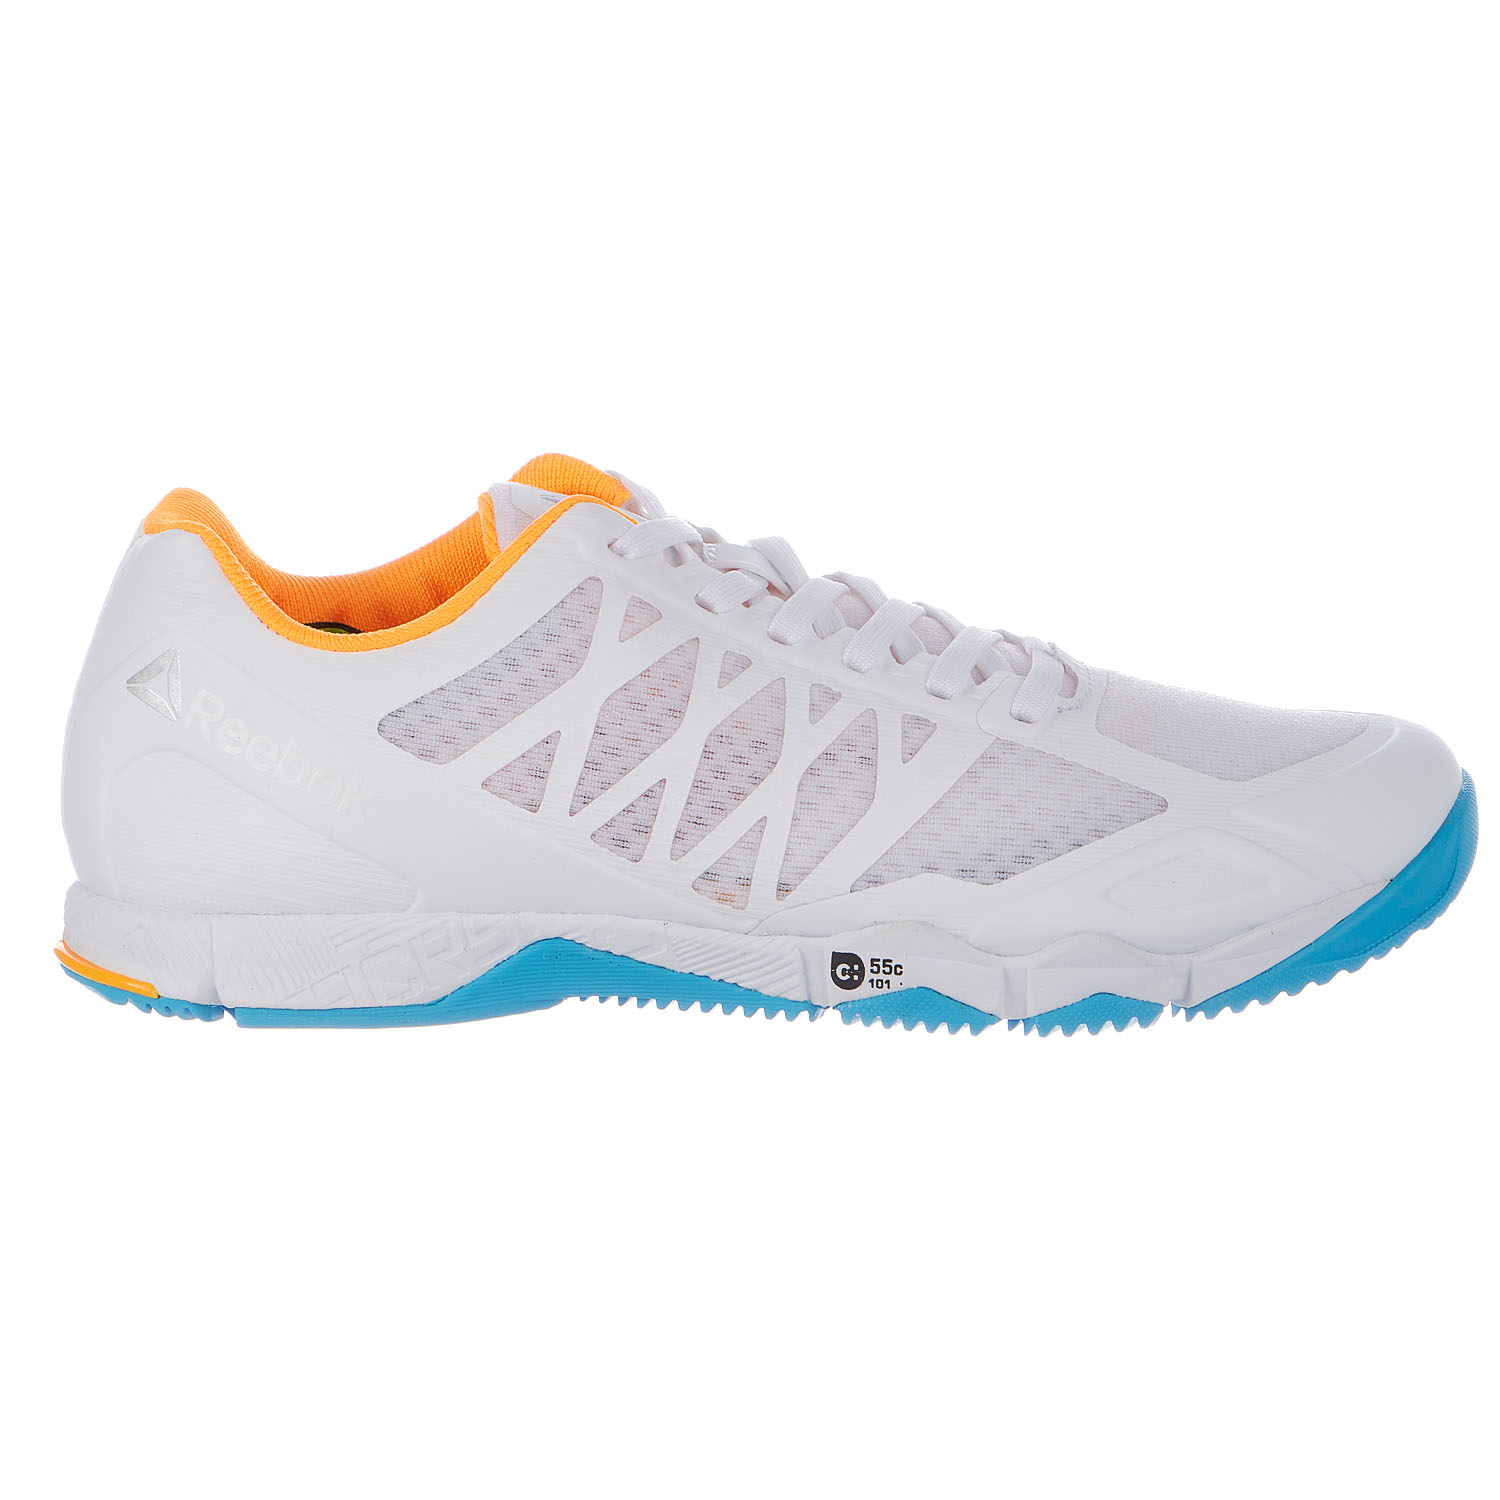 Reebok Crossfit Speed TR Cross-Trainer Shoe Womens by Reebok